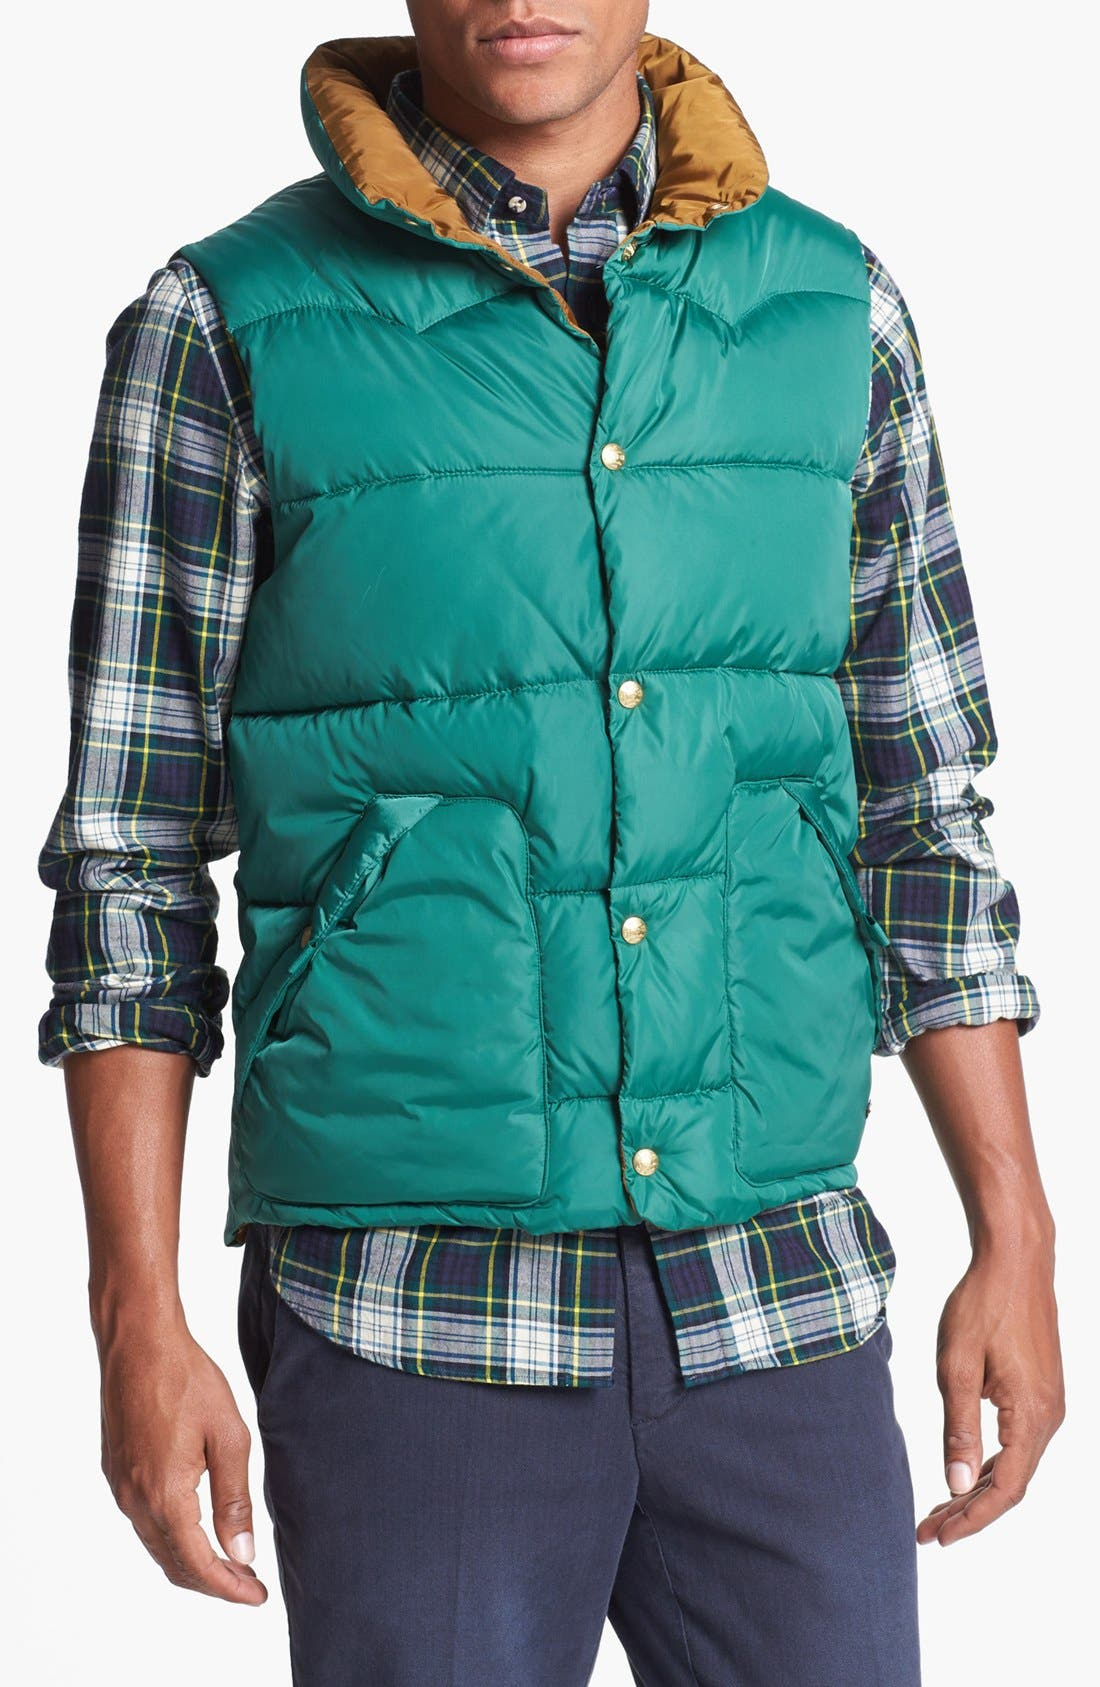 SCOTCH & SODA, Reversible Quilted Vest, Main thumbnail 1, color, 310